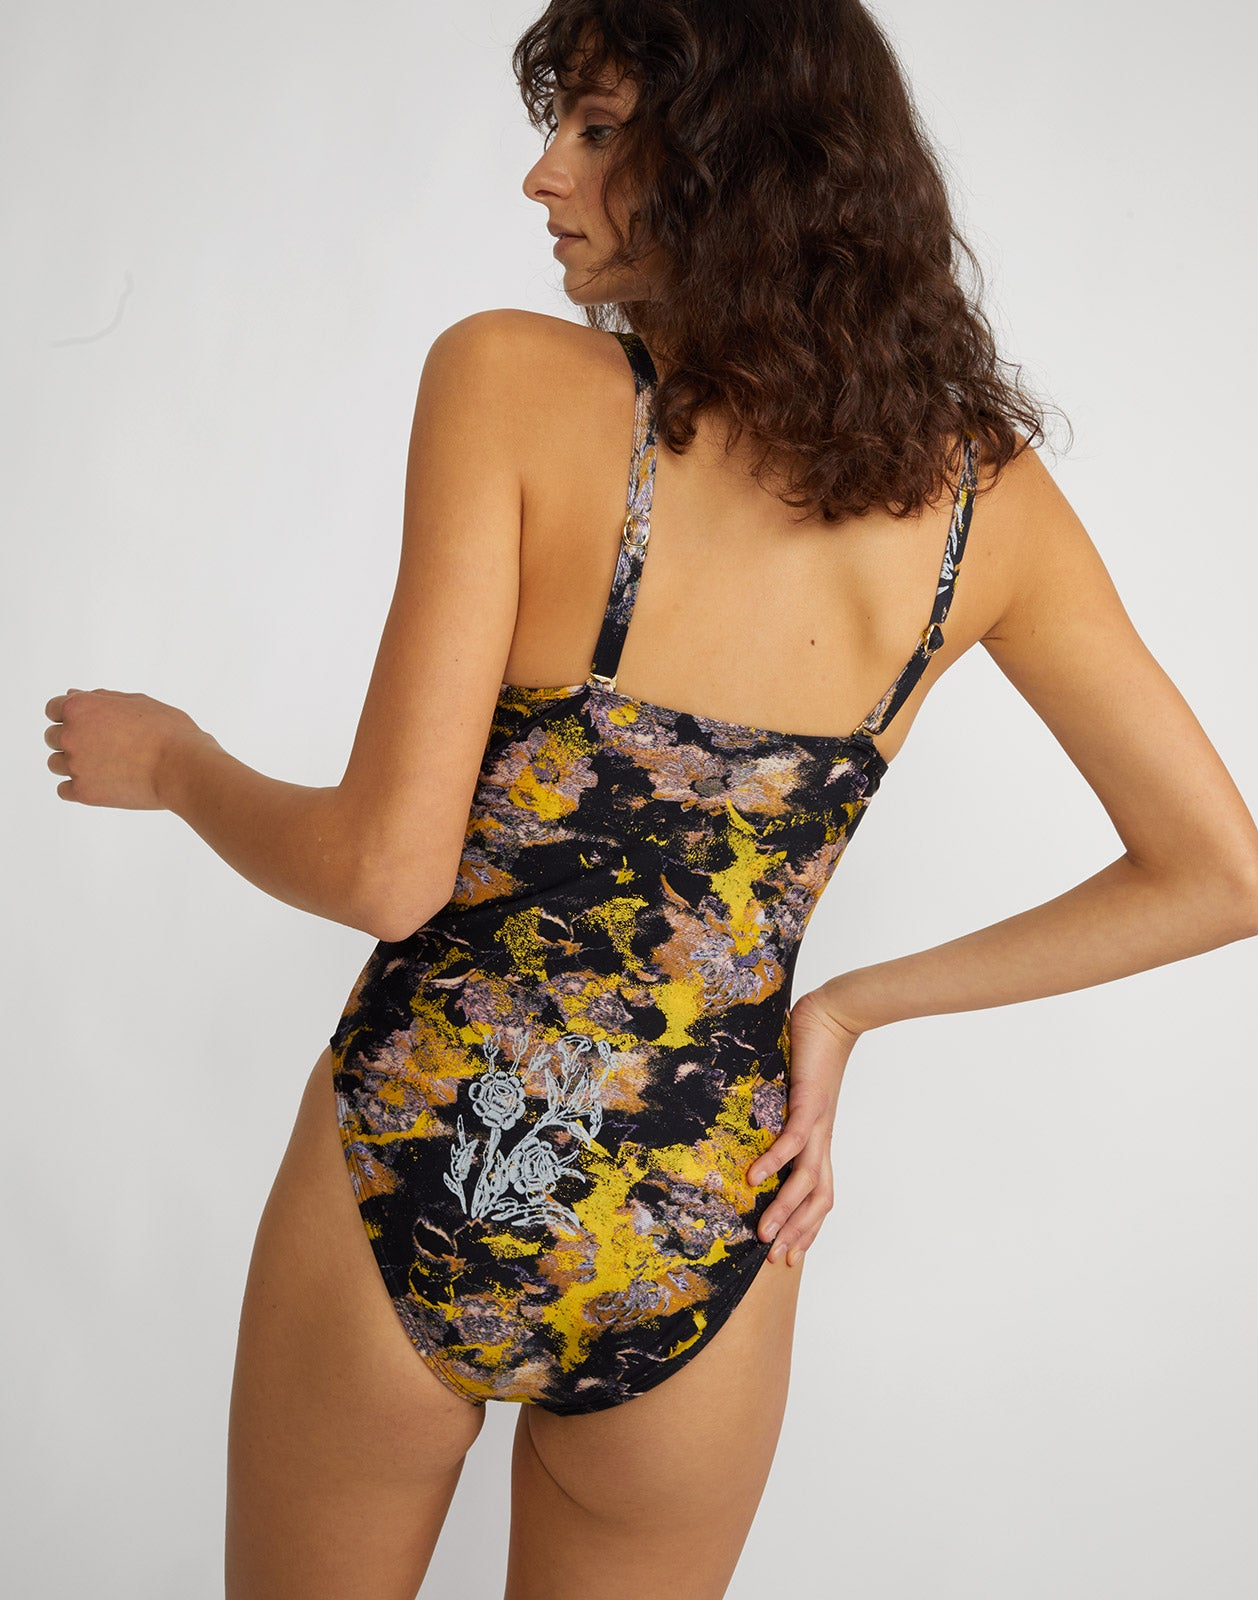 Back view of metallic floral one piece swimsuit with underwire bralette and adjustable straps.